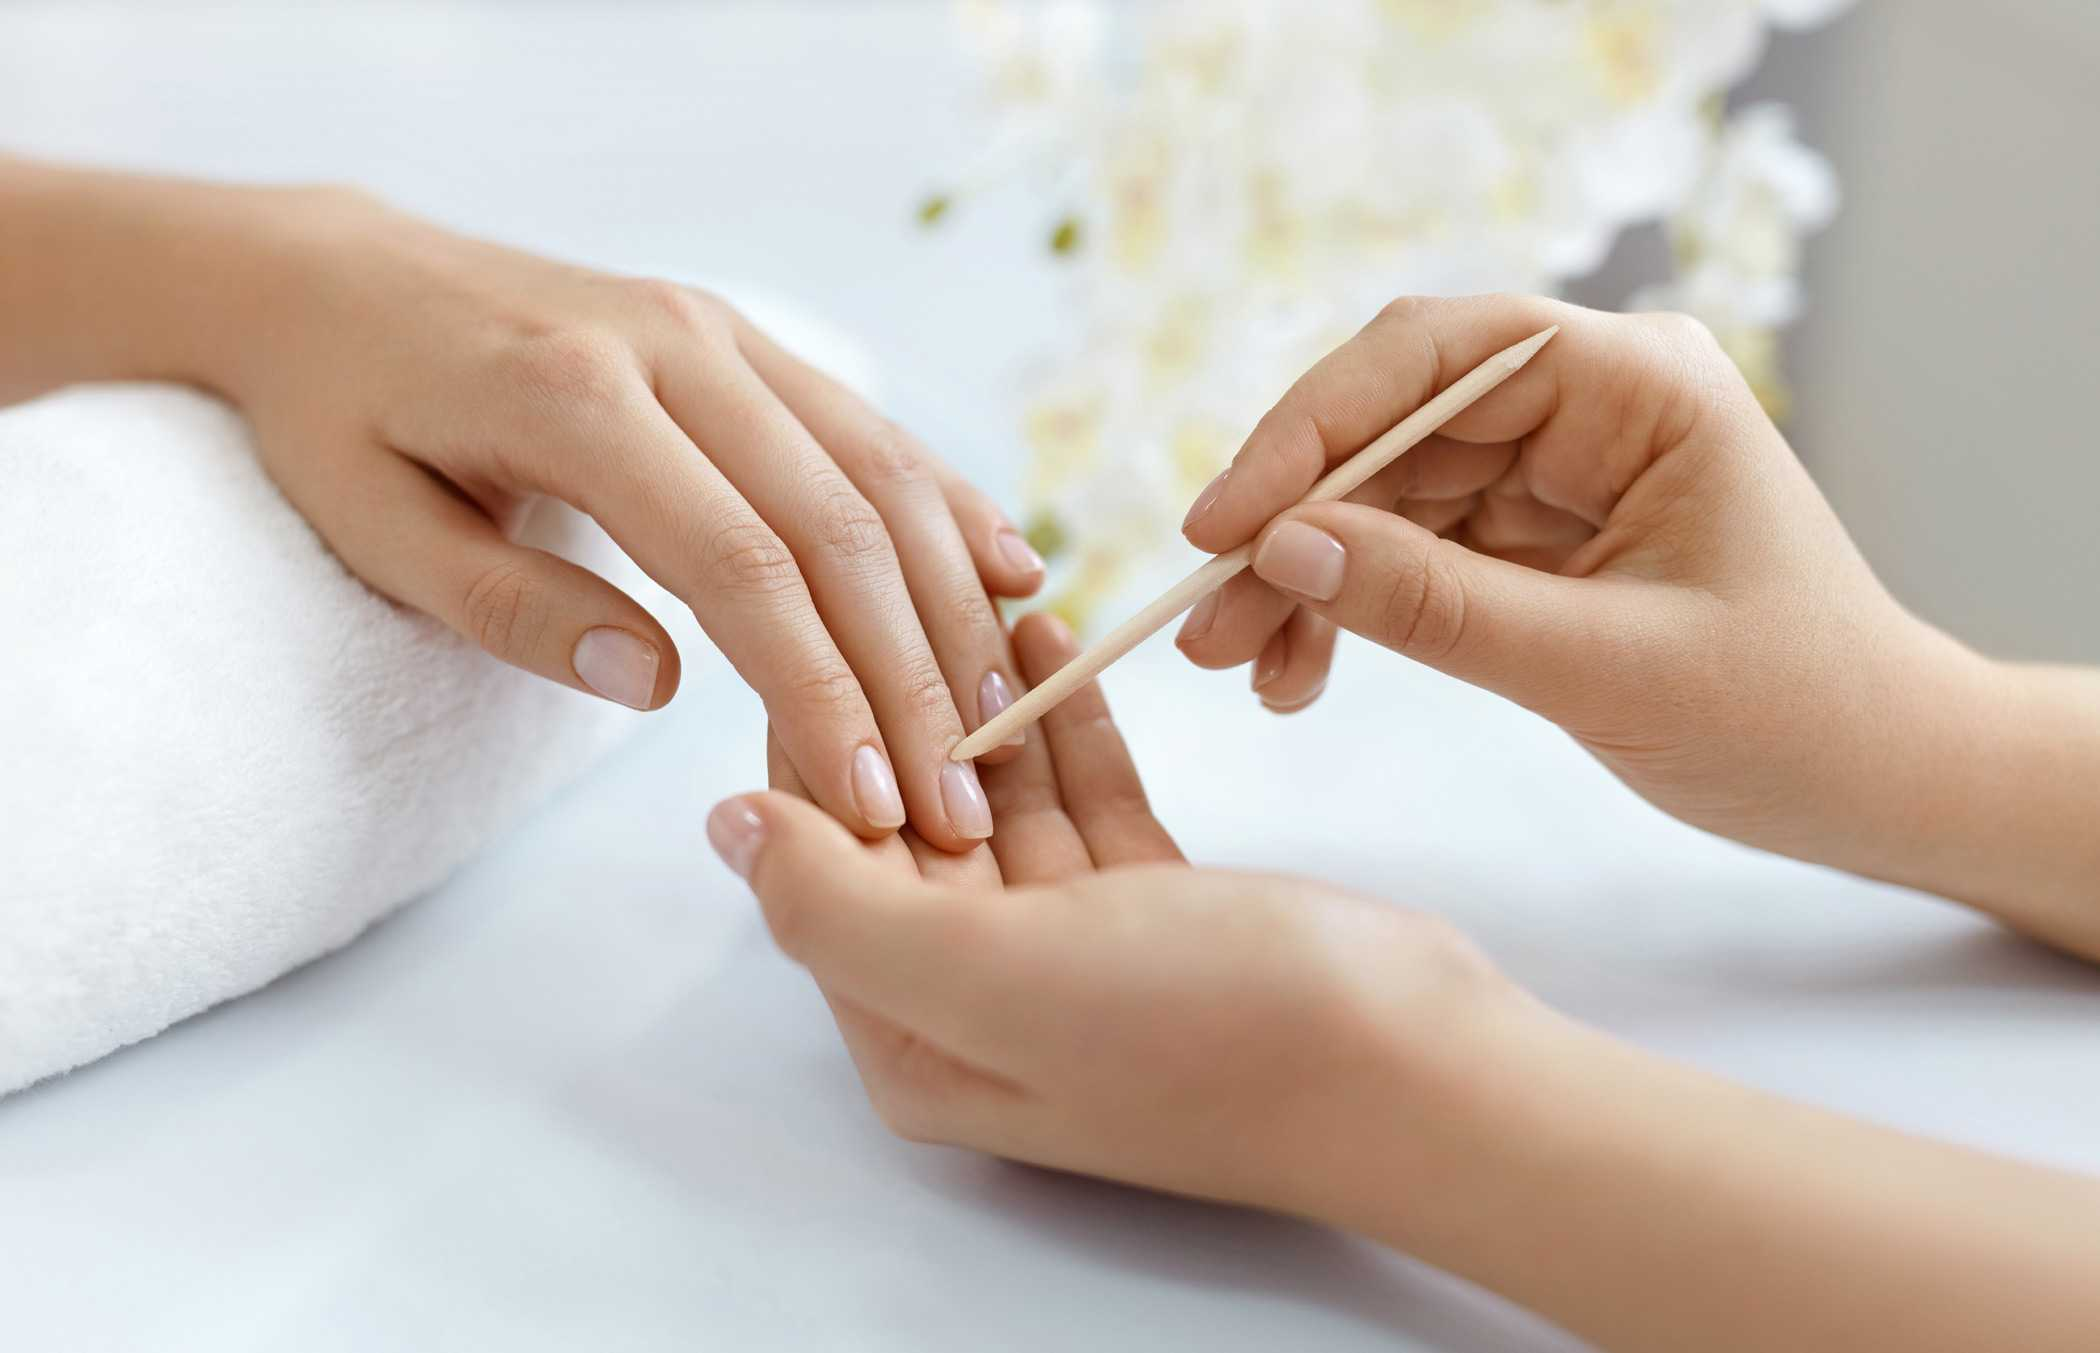 A woman receiving a manicure